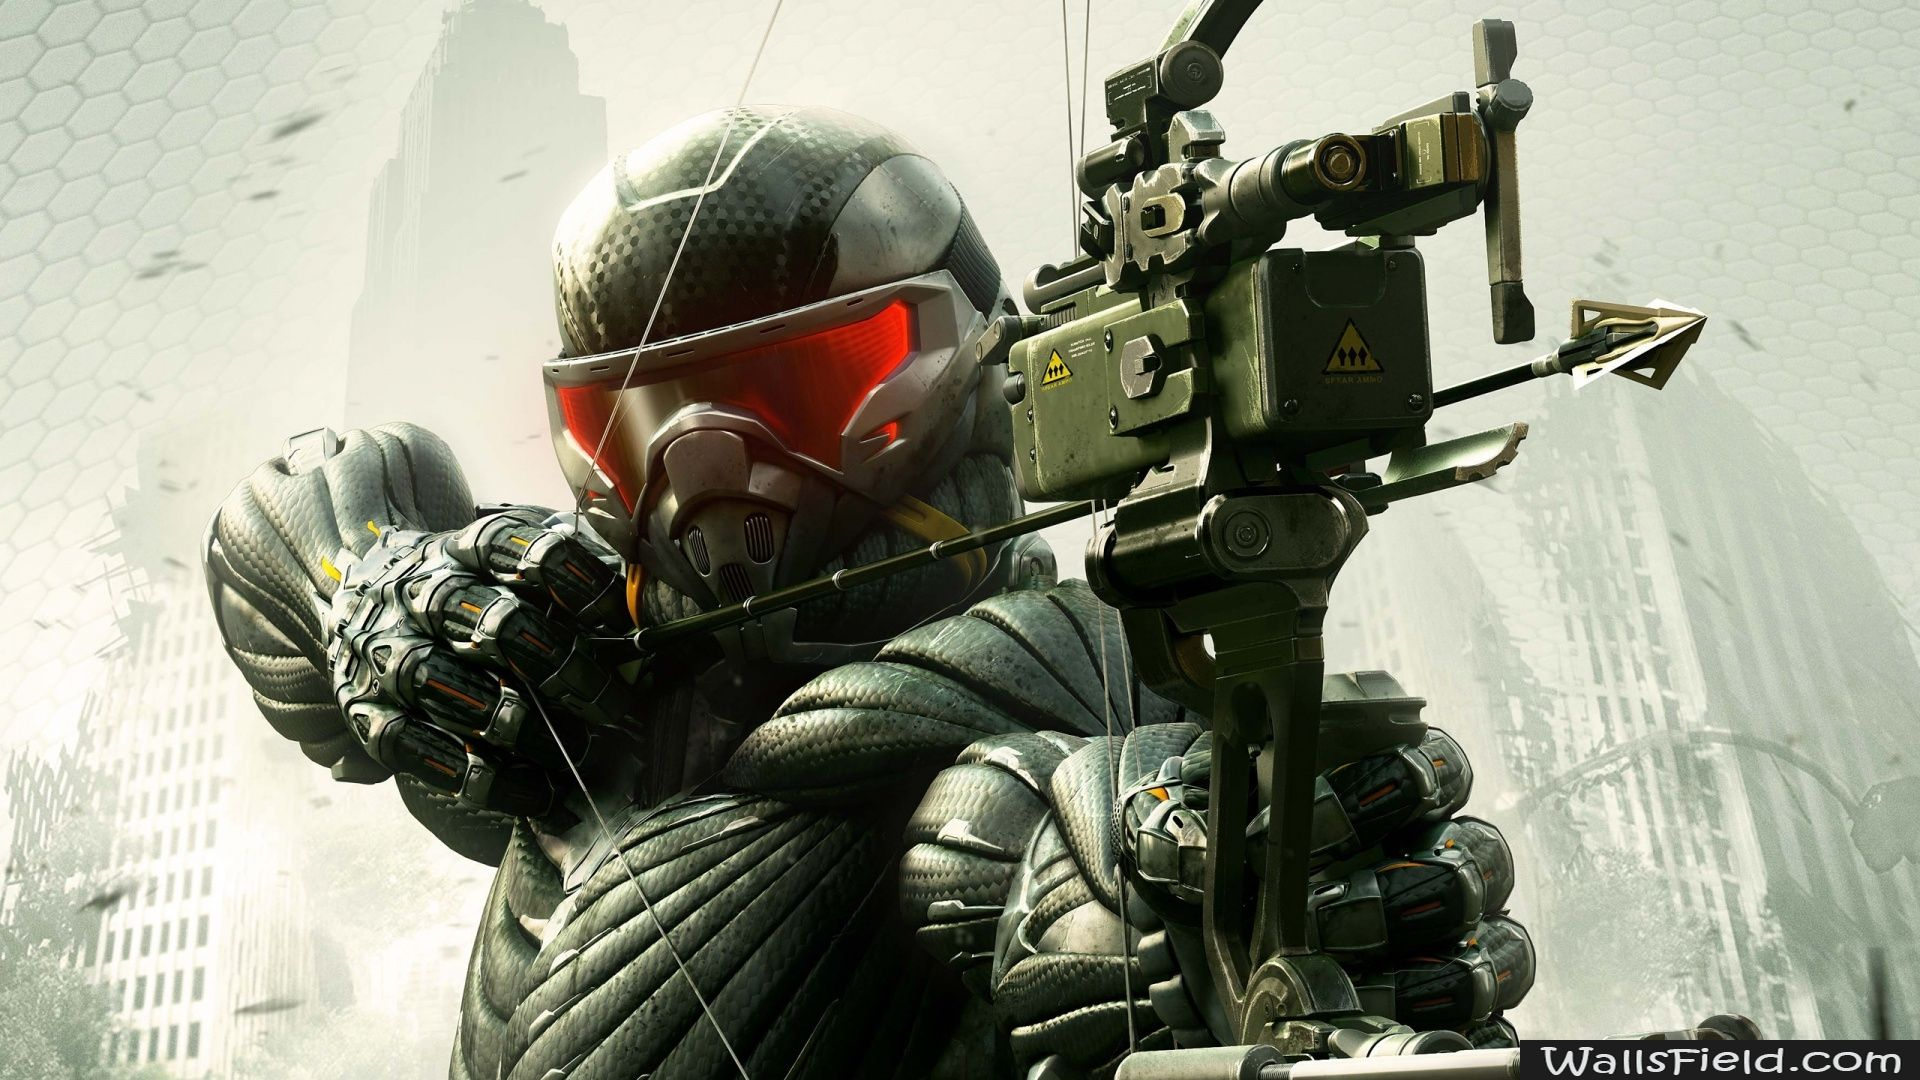 Crysis 3 Wallsfield Com Free Hd Wallpapers Video Game Pc Games Download Apocalyptic